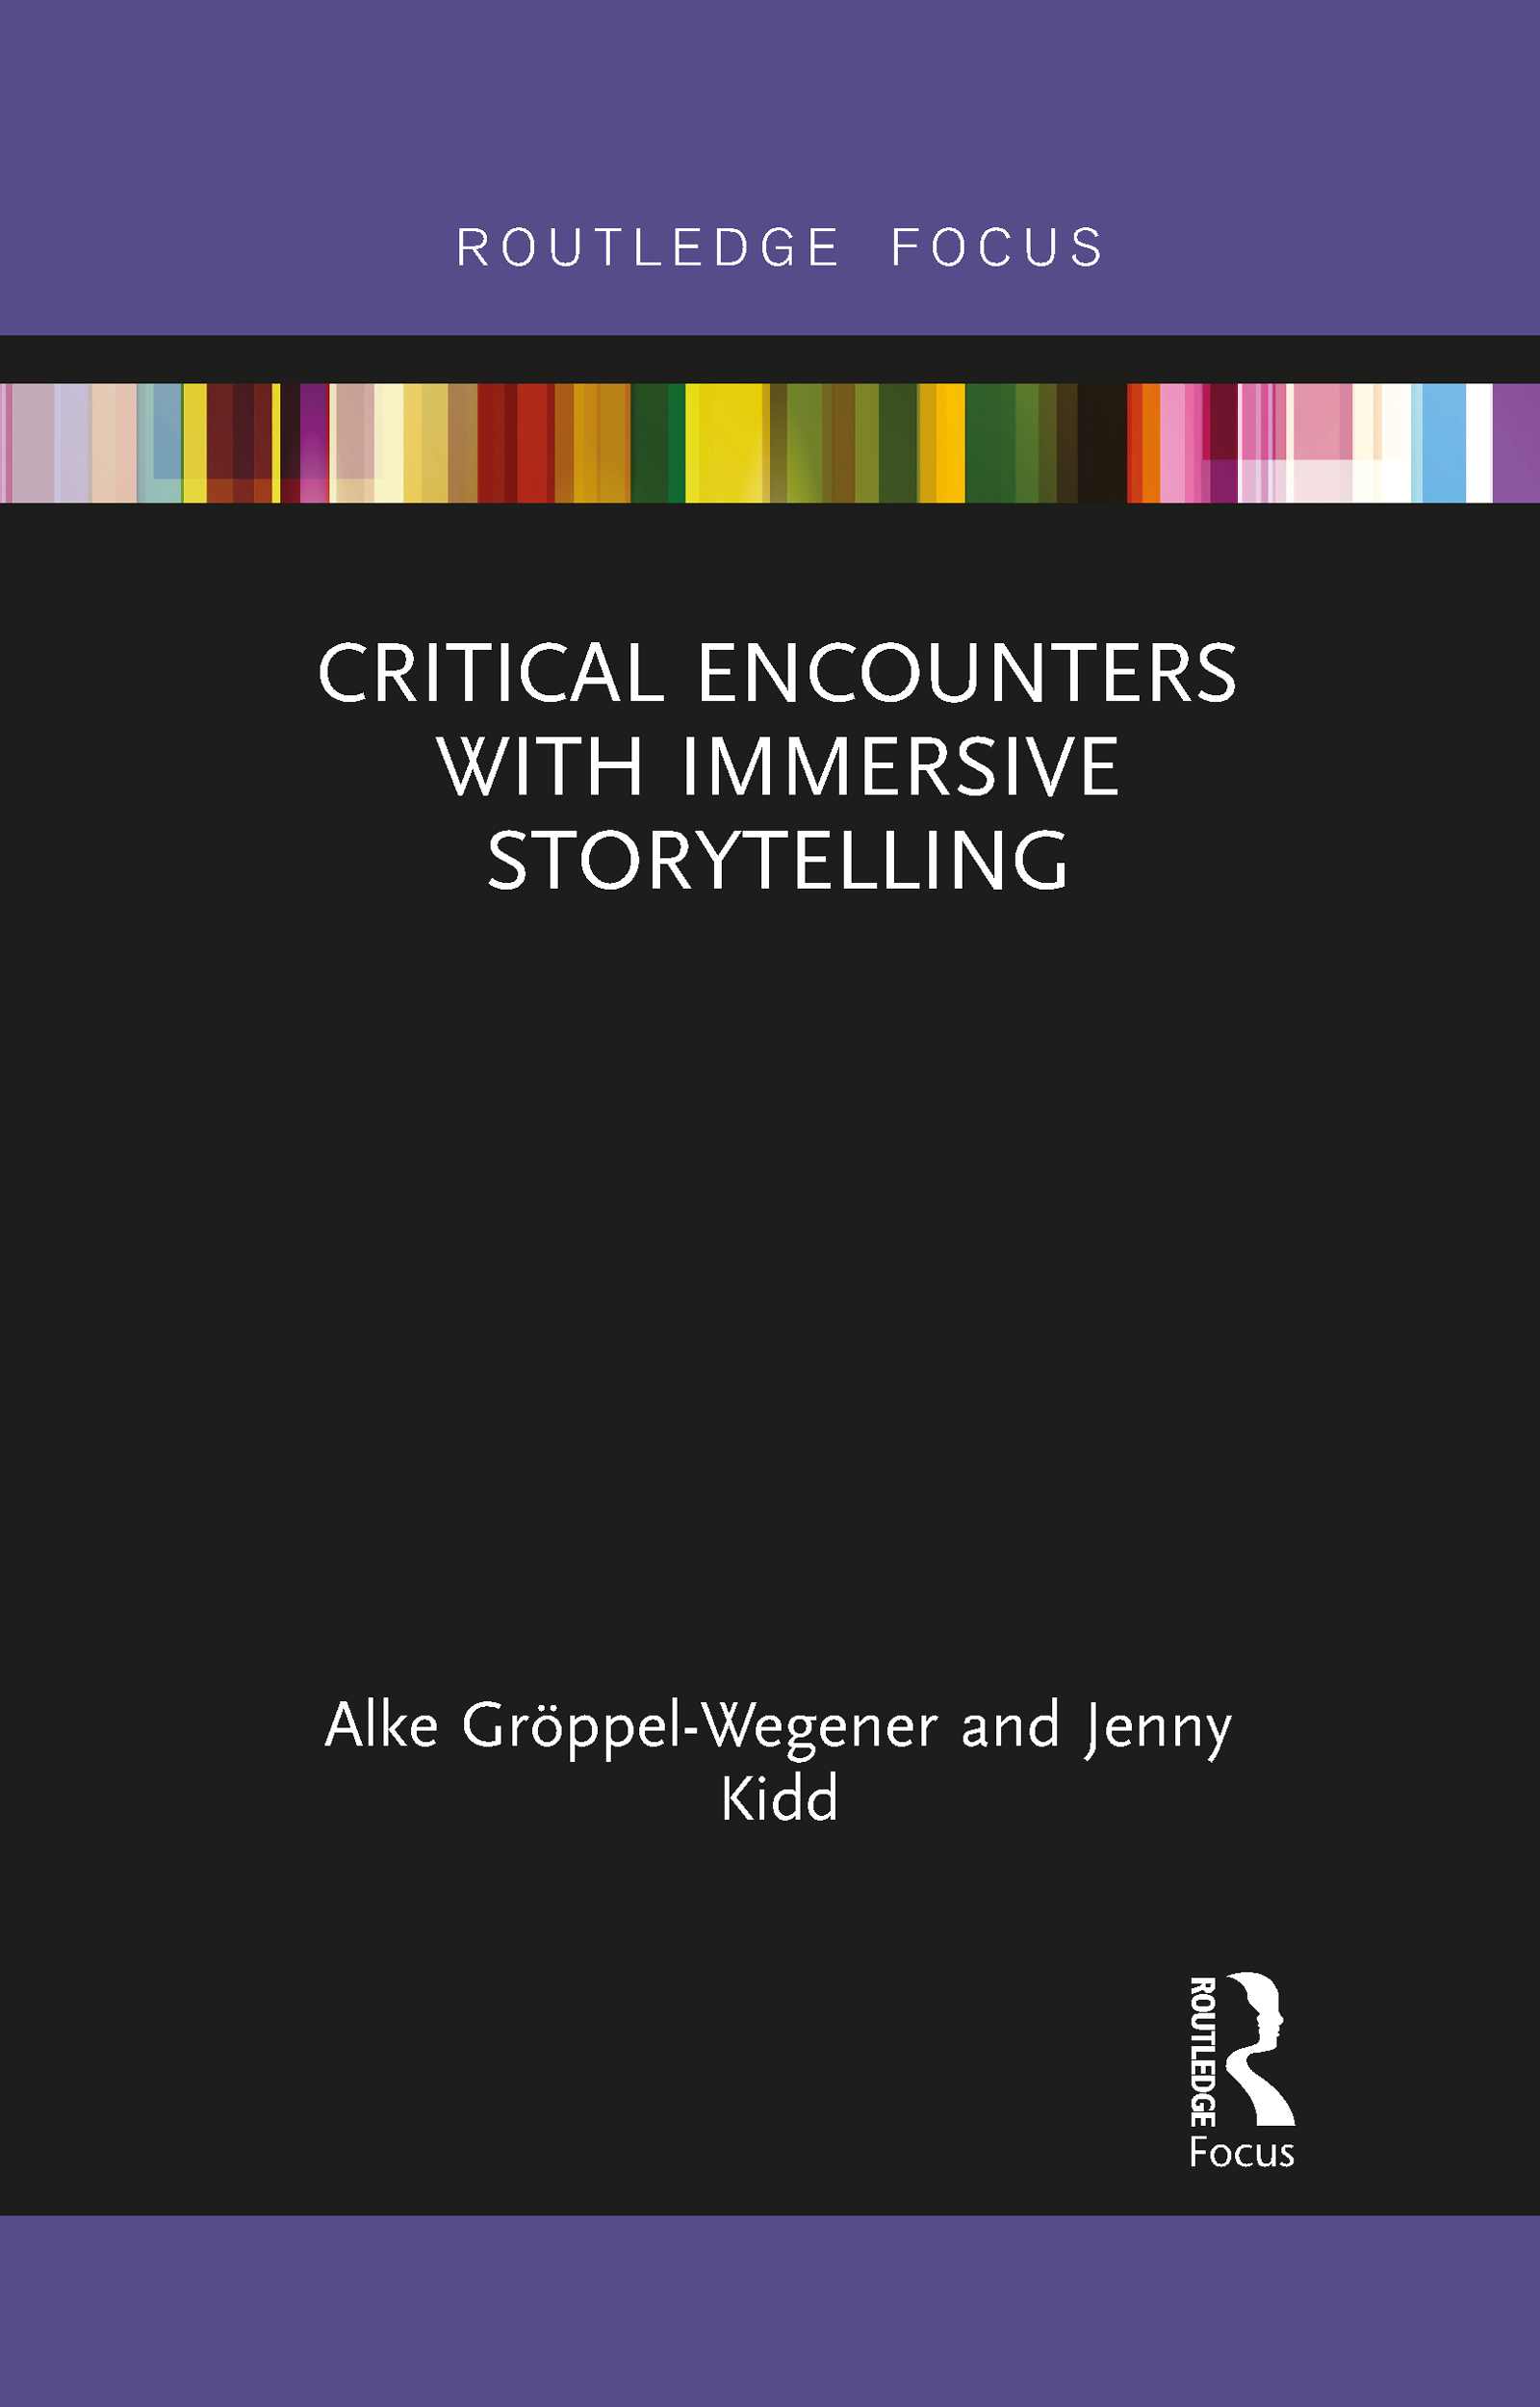 Critical Encounters with Immersive Storytelling